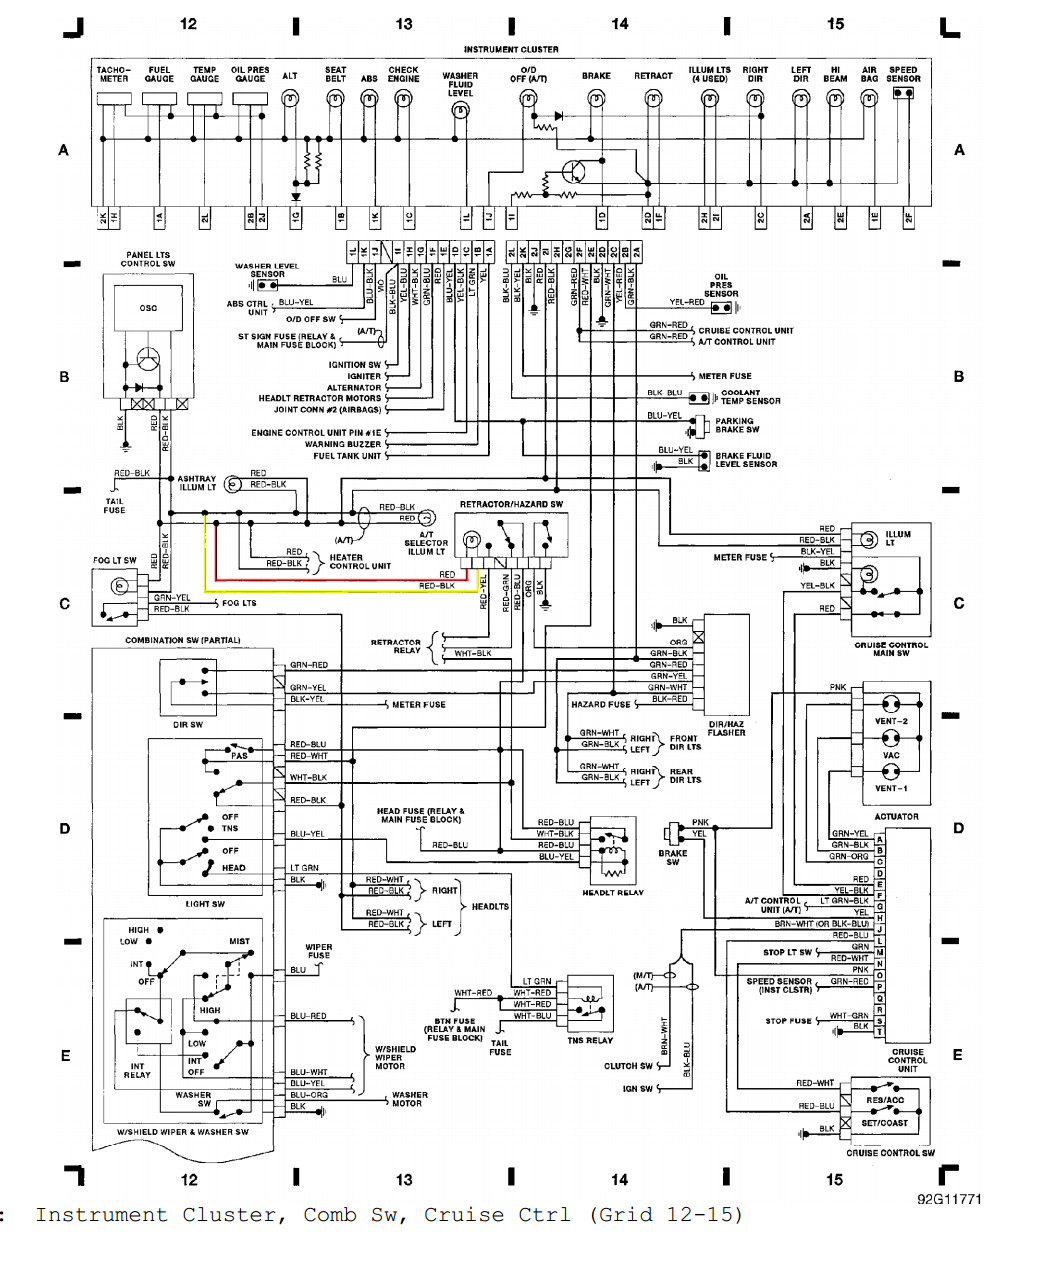 mazda bongo wiring diagram - 2008 jeep compass radio wiring diagram -  enginee-diagrams.cukk.jeanjaures37.fr  wiring diagram